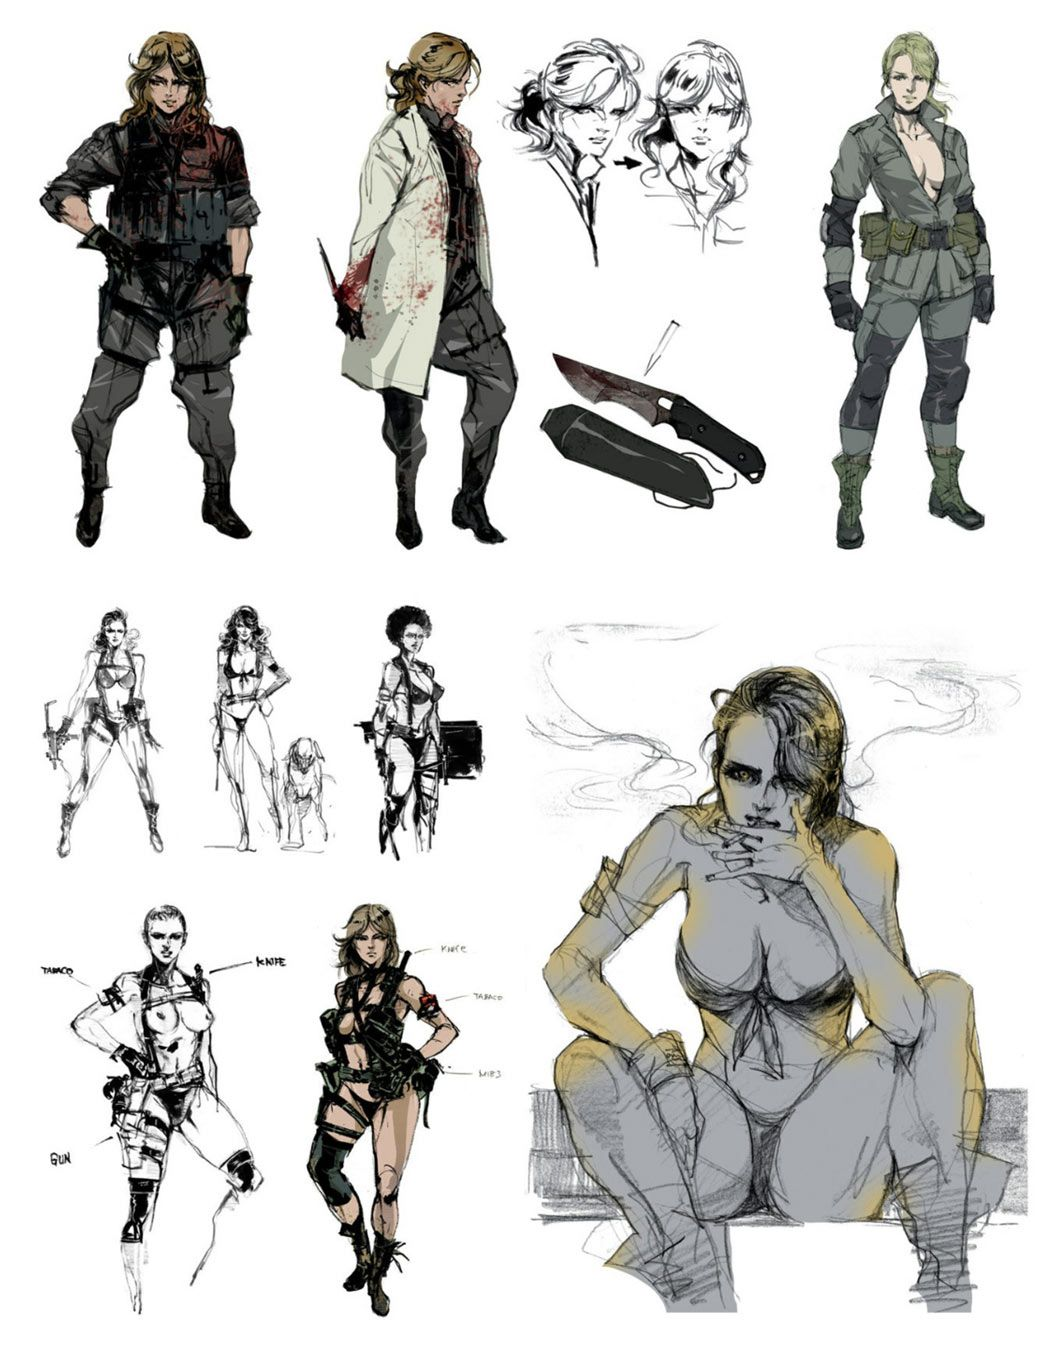 Quiet Concept Art From Metal Gear Solid V Art Artwork Gaming Videogames Gamer Gameart Conceptart Illustra Metal Gear Metal Gear Rising Metal Gear Solid